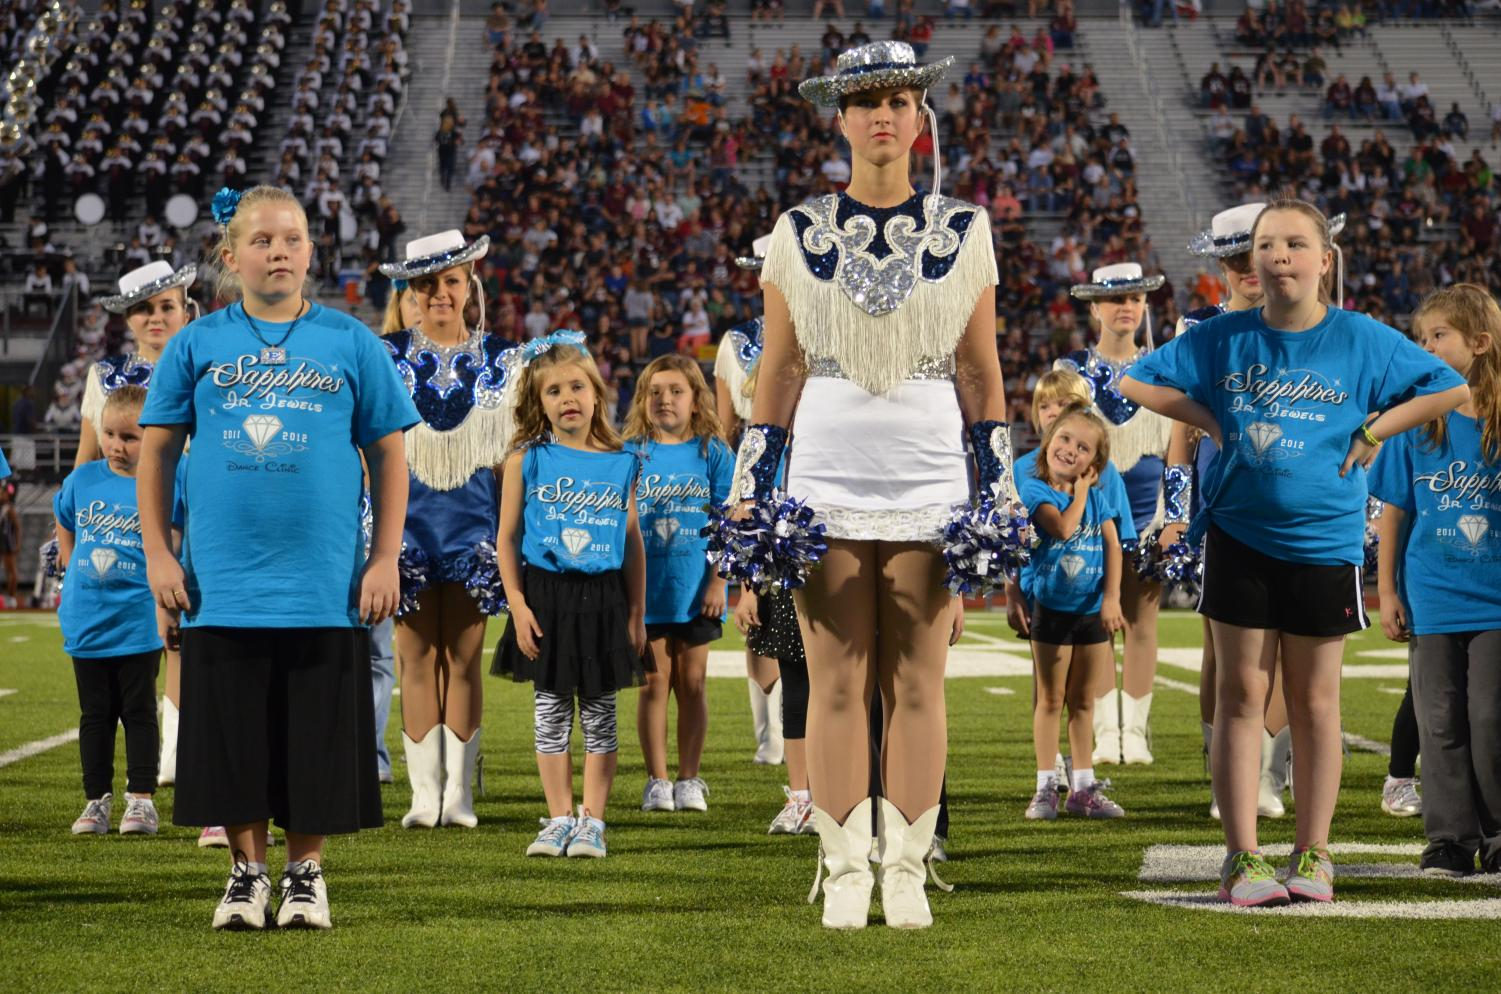 A look back \\ Little did journalism adviser Mrs. Casi Thedford know that the photo she was taking of her daughter seven years ago would be used to showcase current Sapphires when they attended the Junior Jewel clinic as young girls. Senior Jordan Smith, on the front row, far left, attended the same clinic and is now an officer on the drill team. See her 'before' and 'after' below.